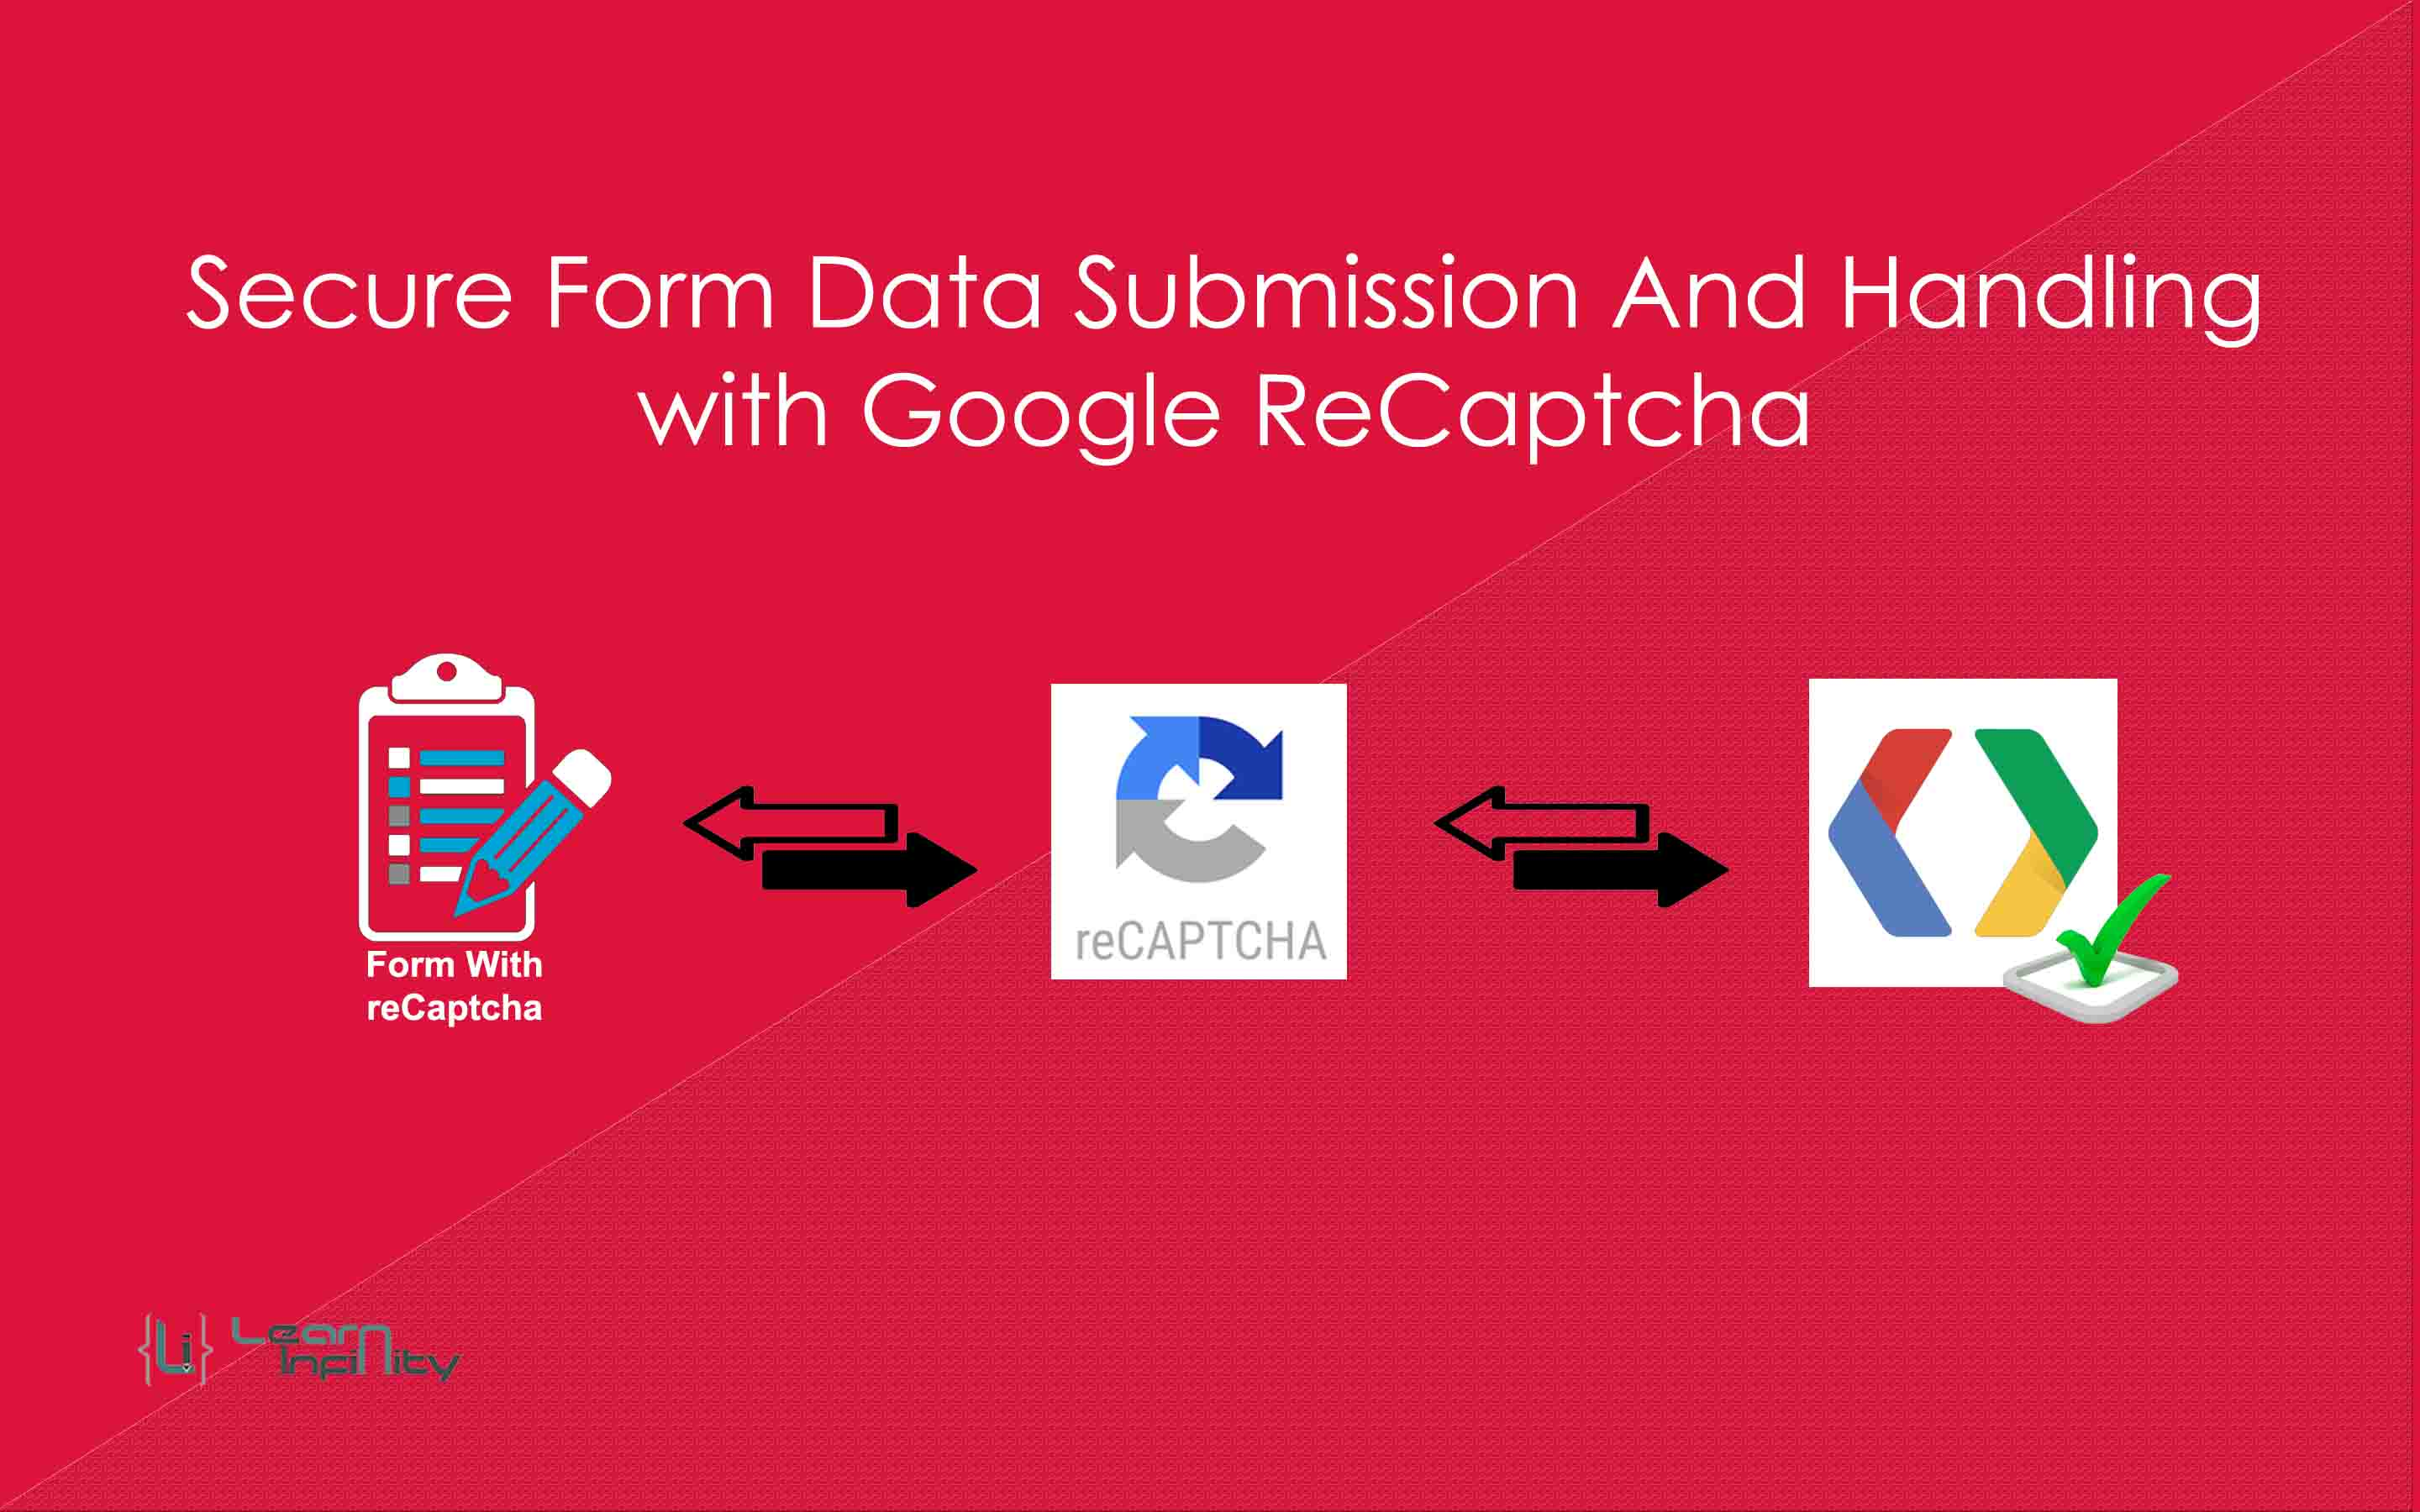 Secure Form Data Submission And  Handling with Google ReCaptcha